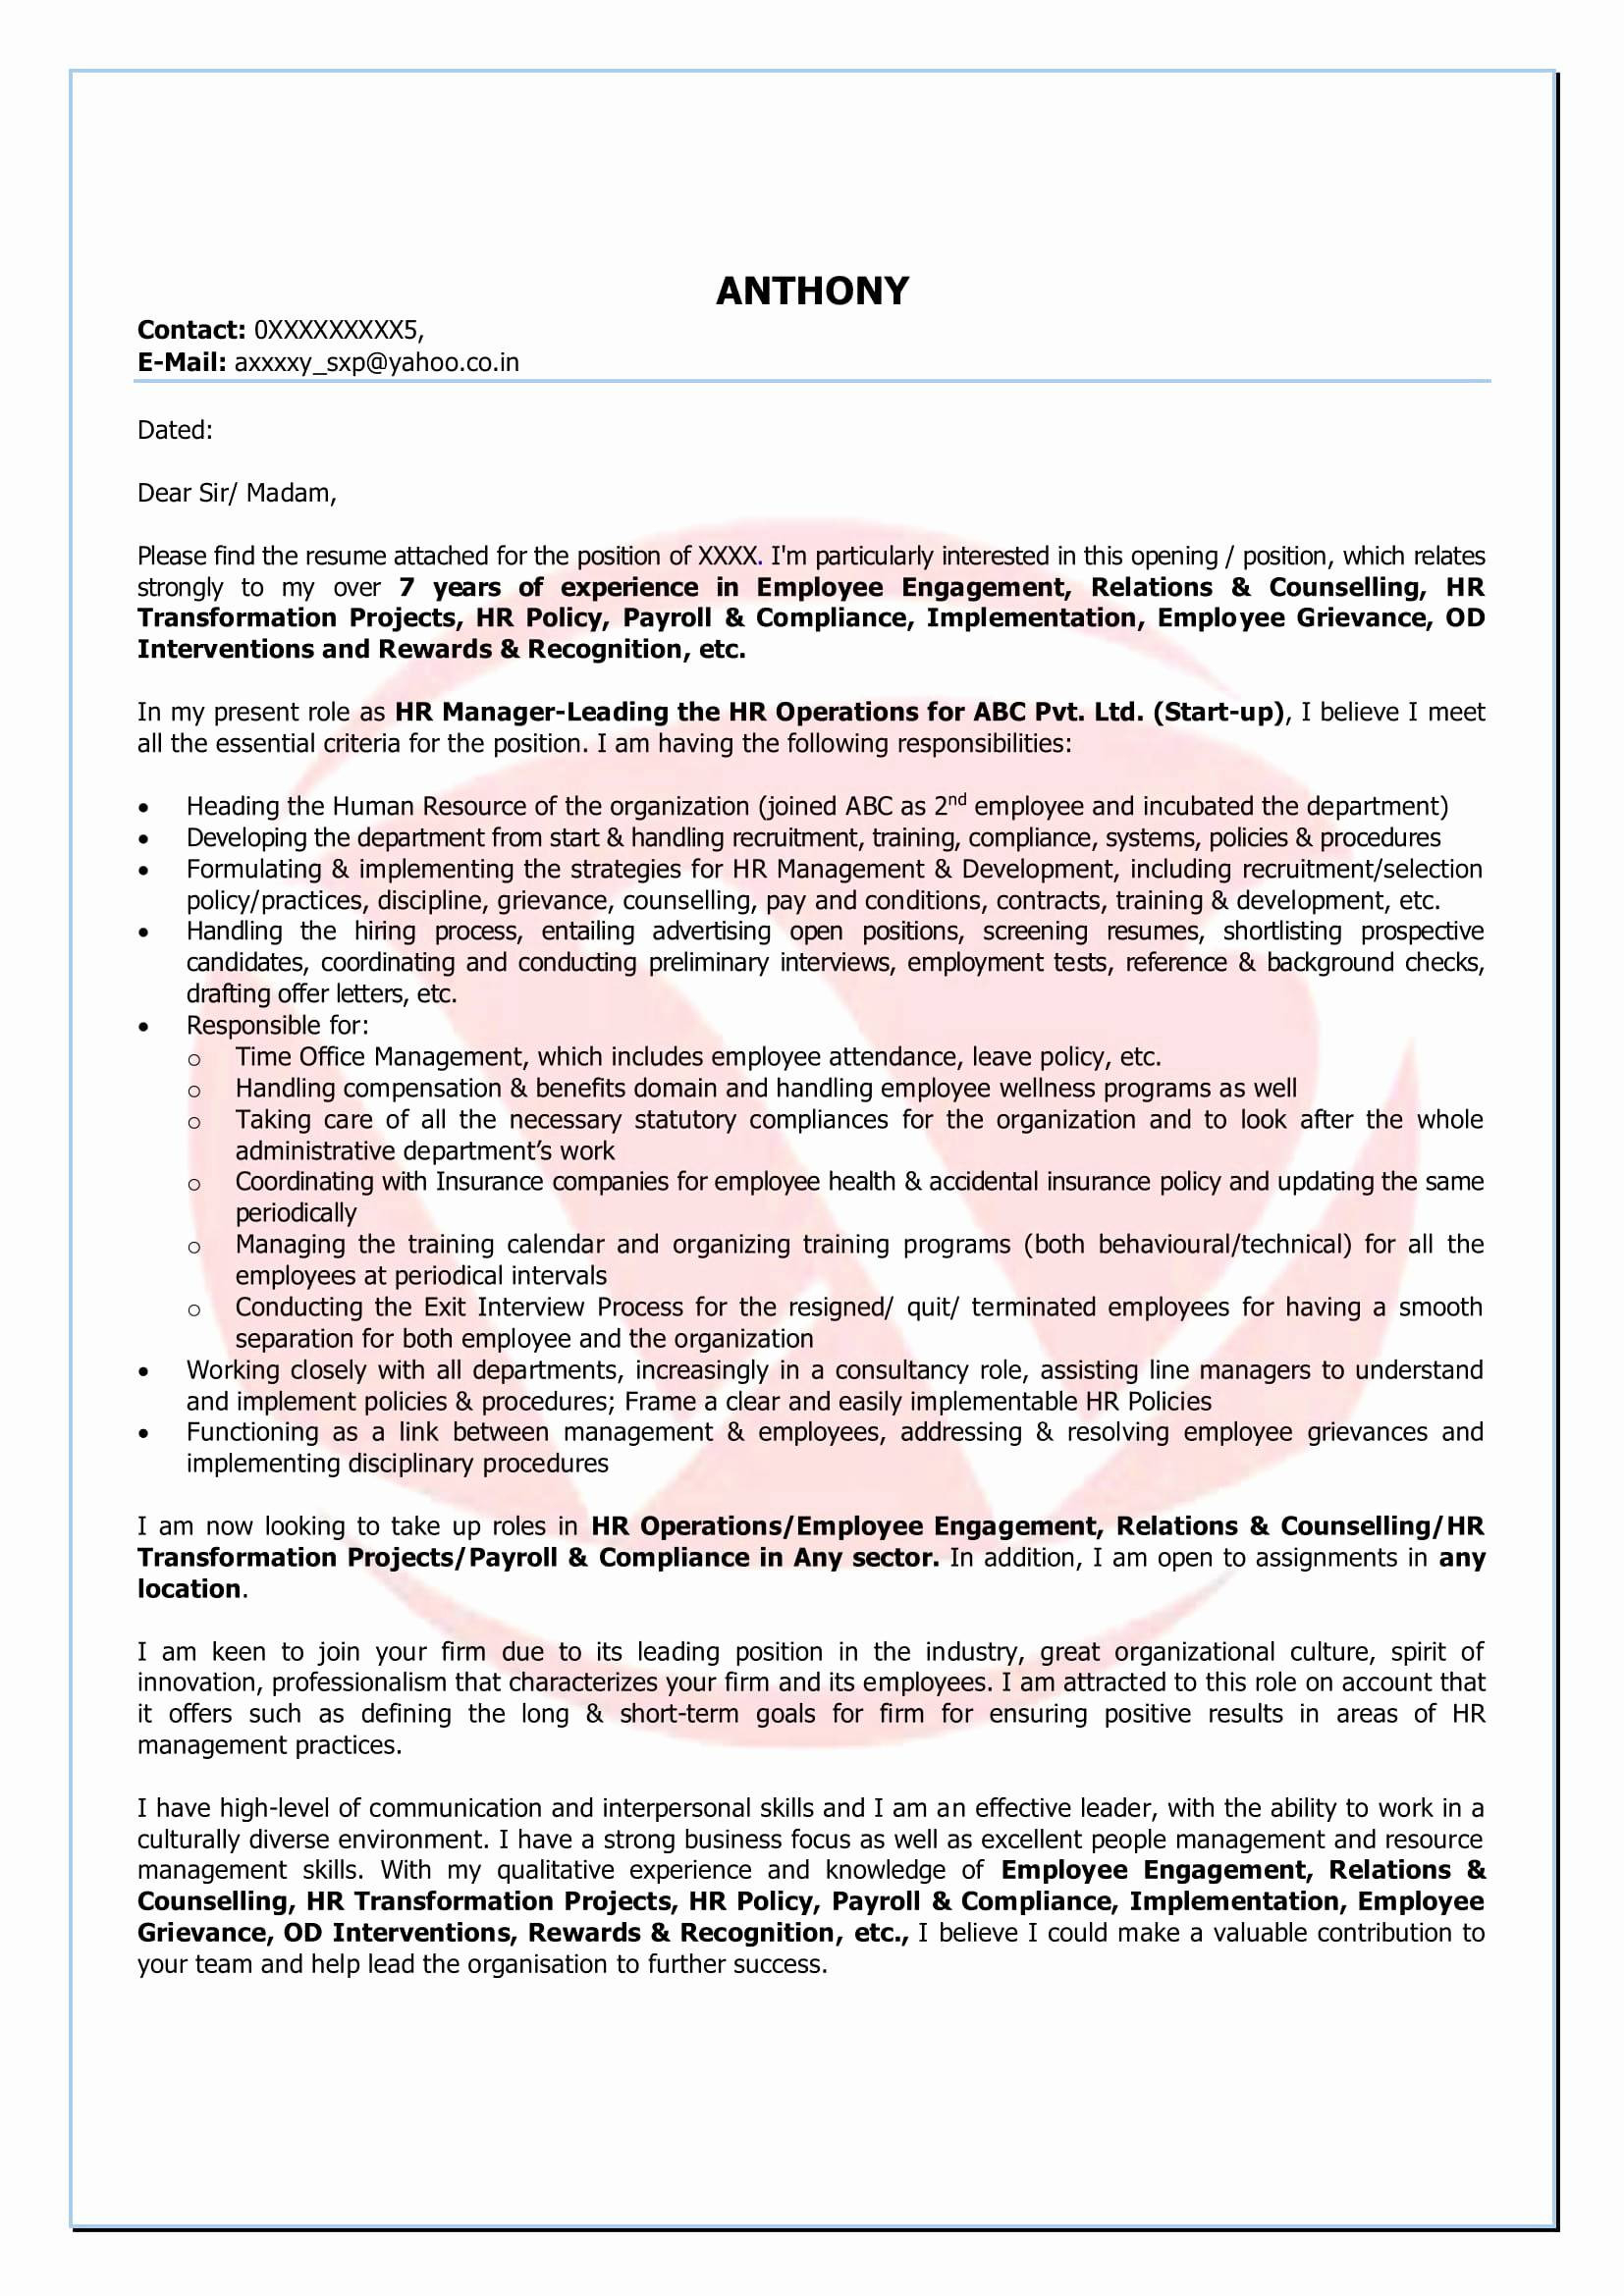 Resume Templates for Medical Field - Counselling Letter Template Samples